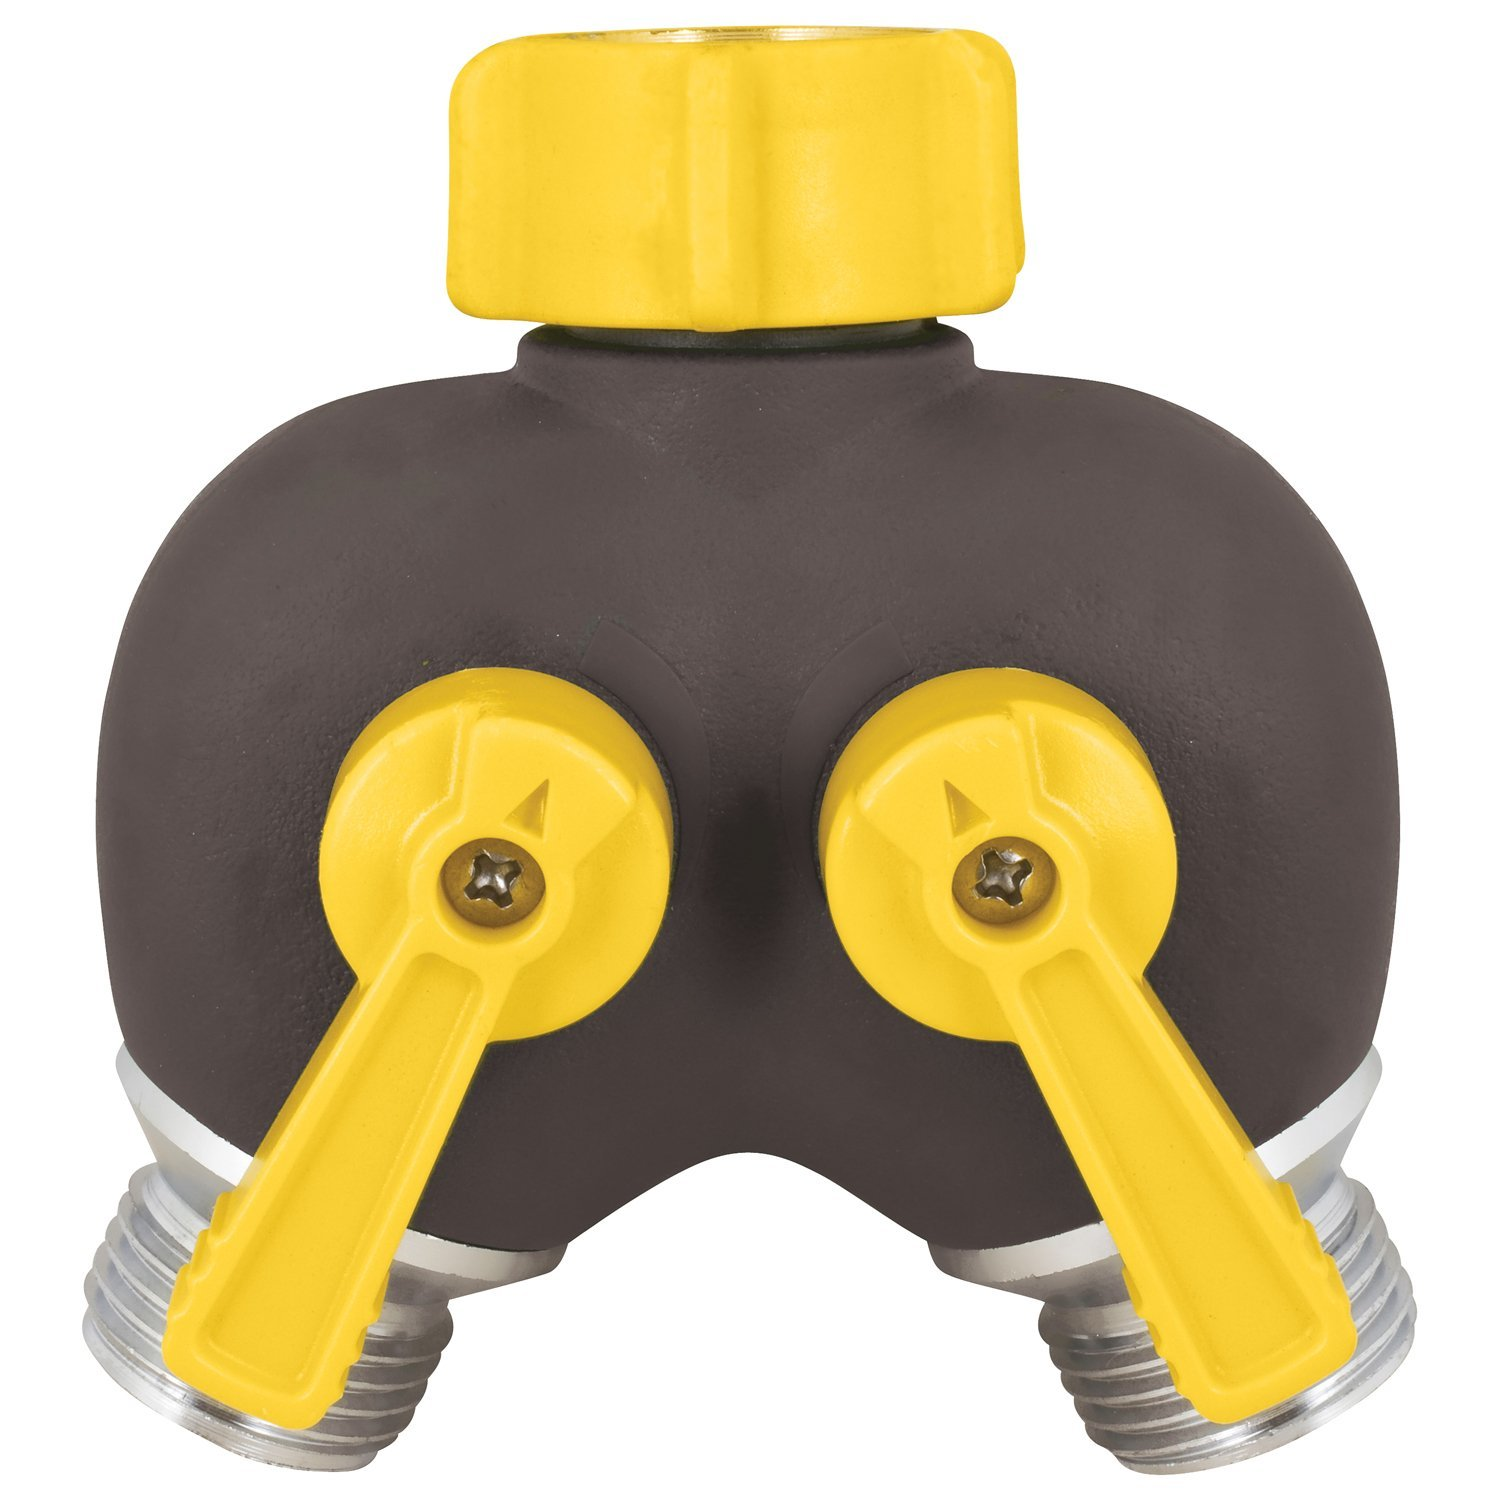 2-Way Hose Valve, Free-spinning coupling nut By Melnor